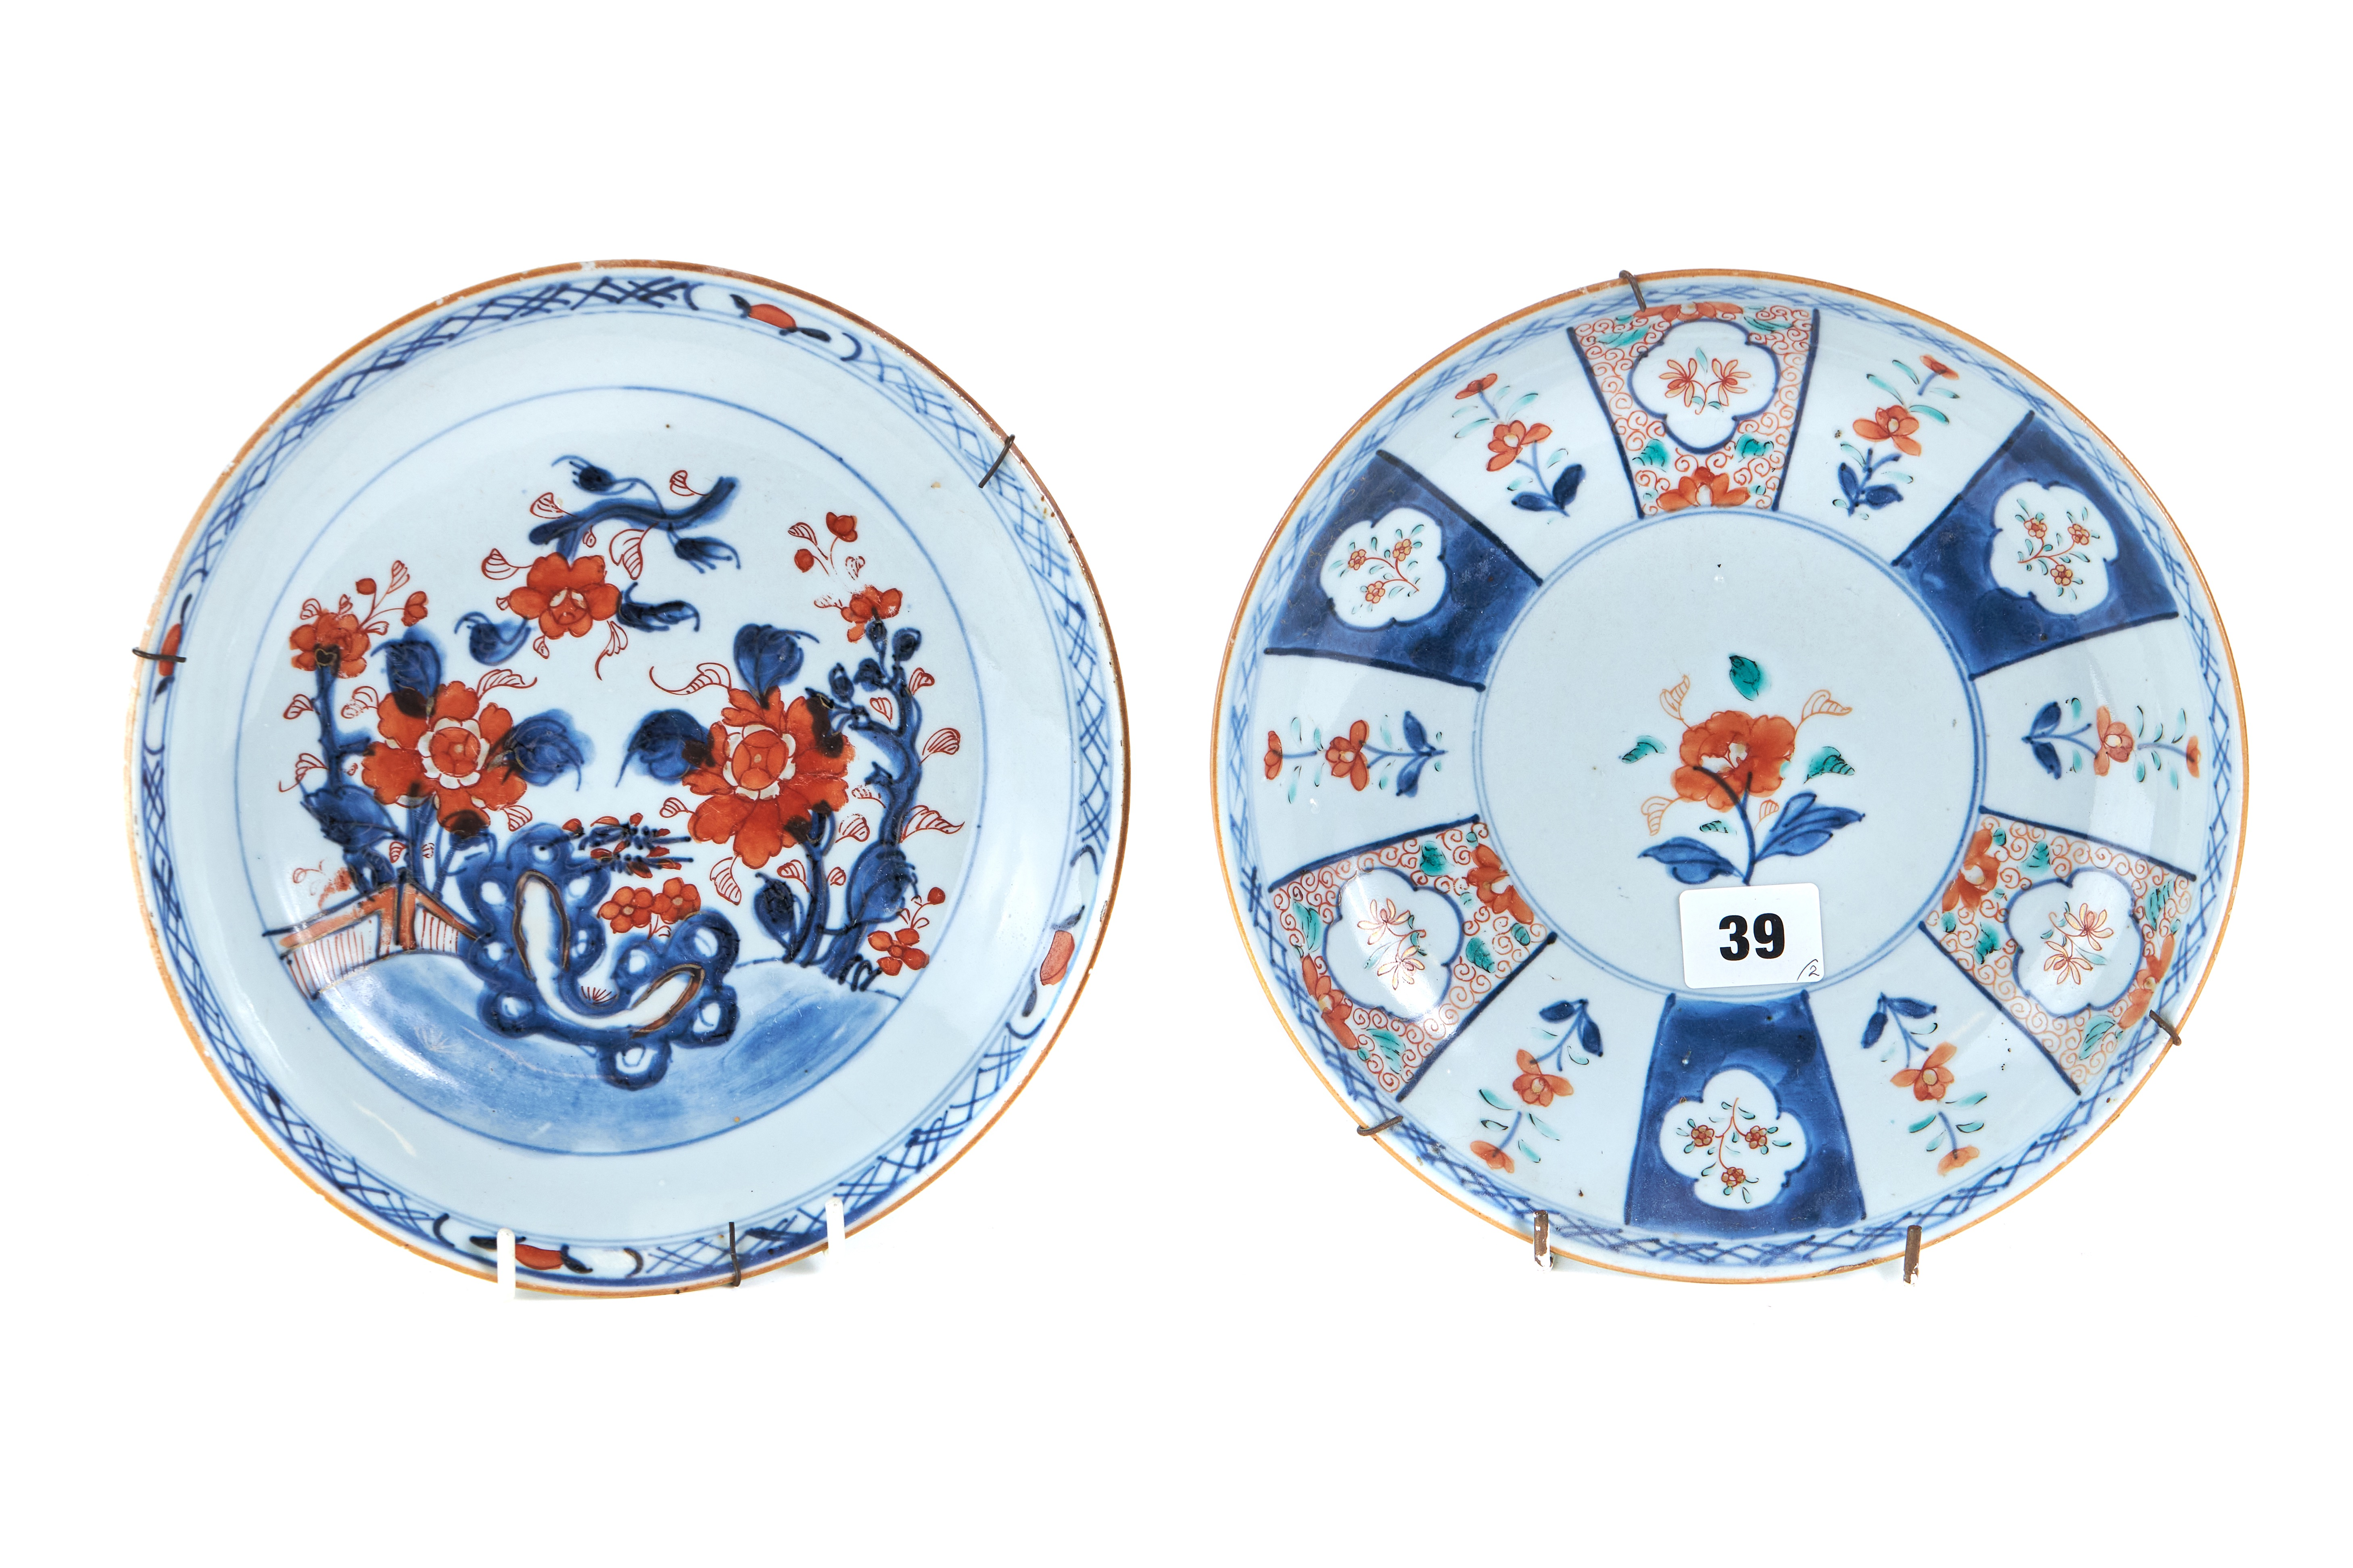 Lot 39 - AN 18TH CENTURY CHINESE PORCELAIN DISHED PLATE, decorated with polychrome panels of flowers,